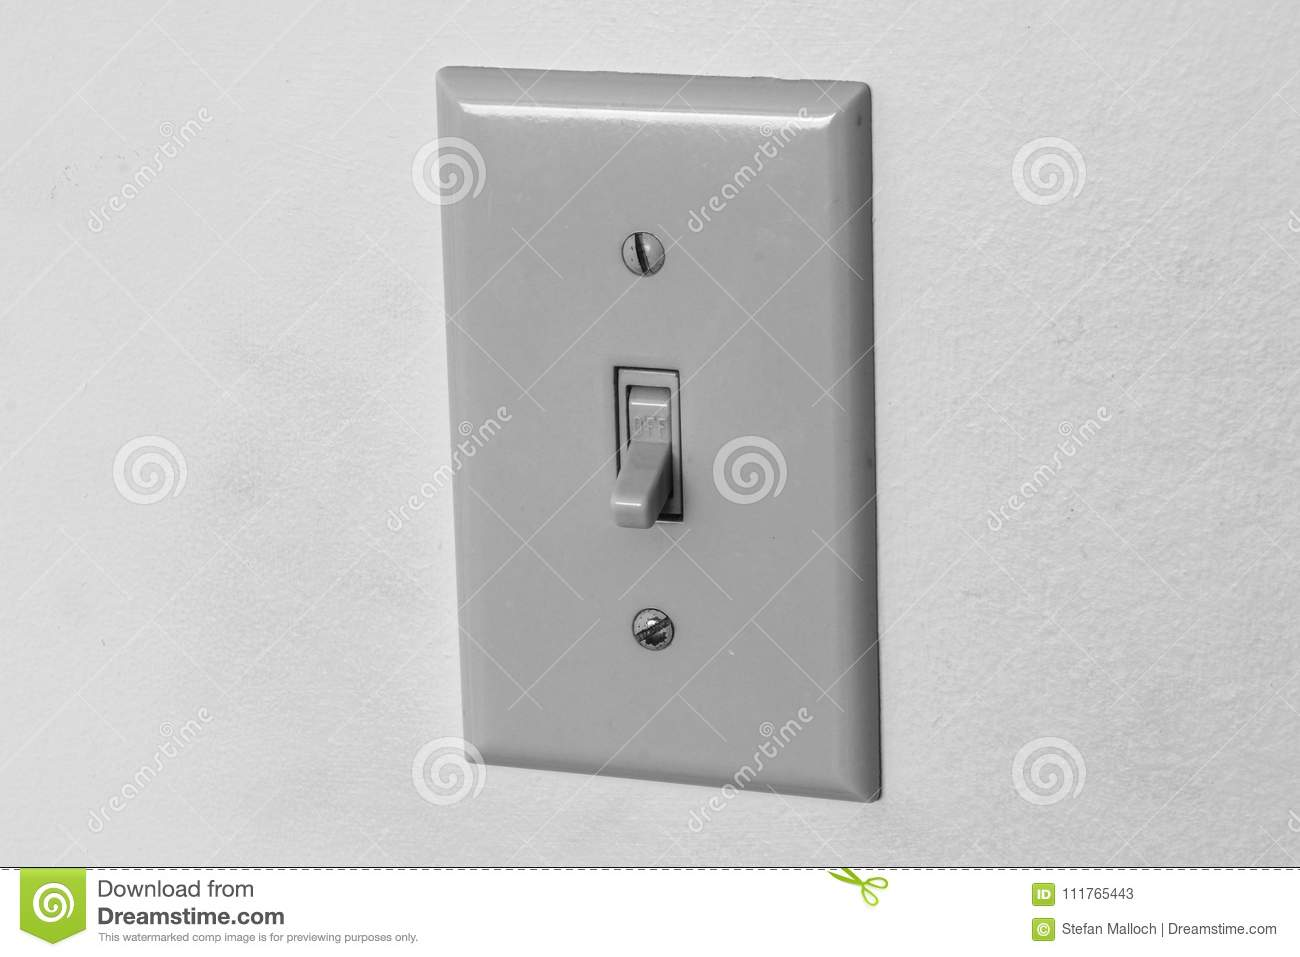 Light Switch In The Off Position Stock Image - Image of plastic ...